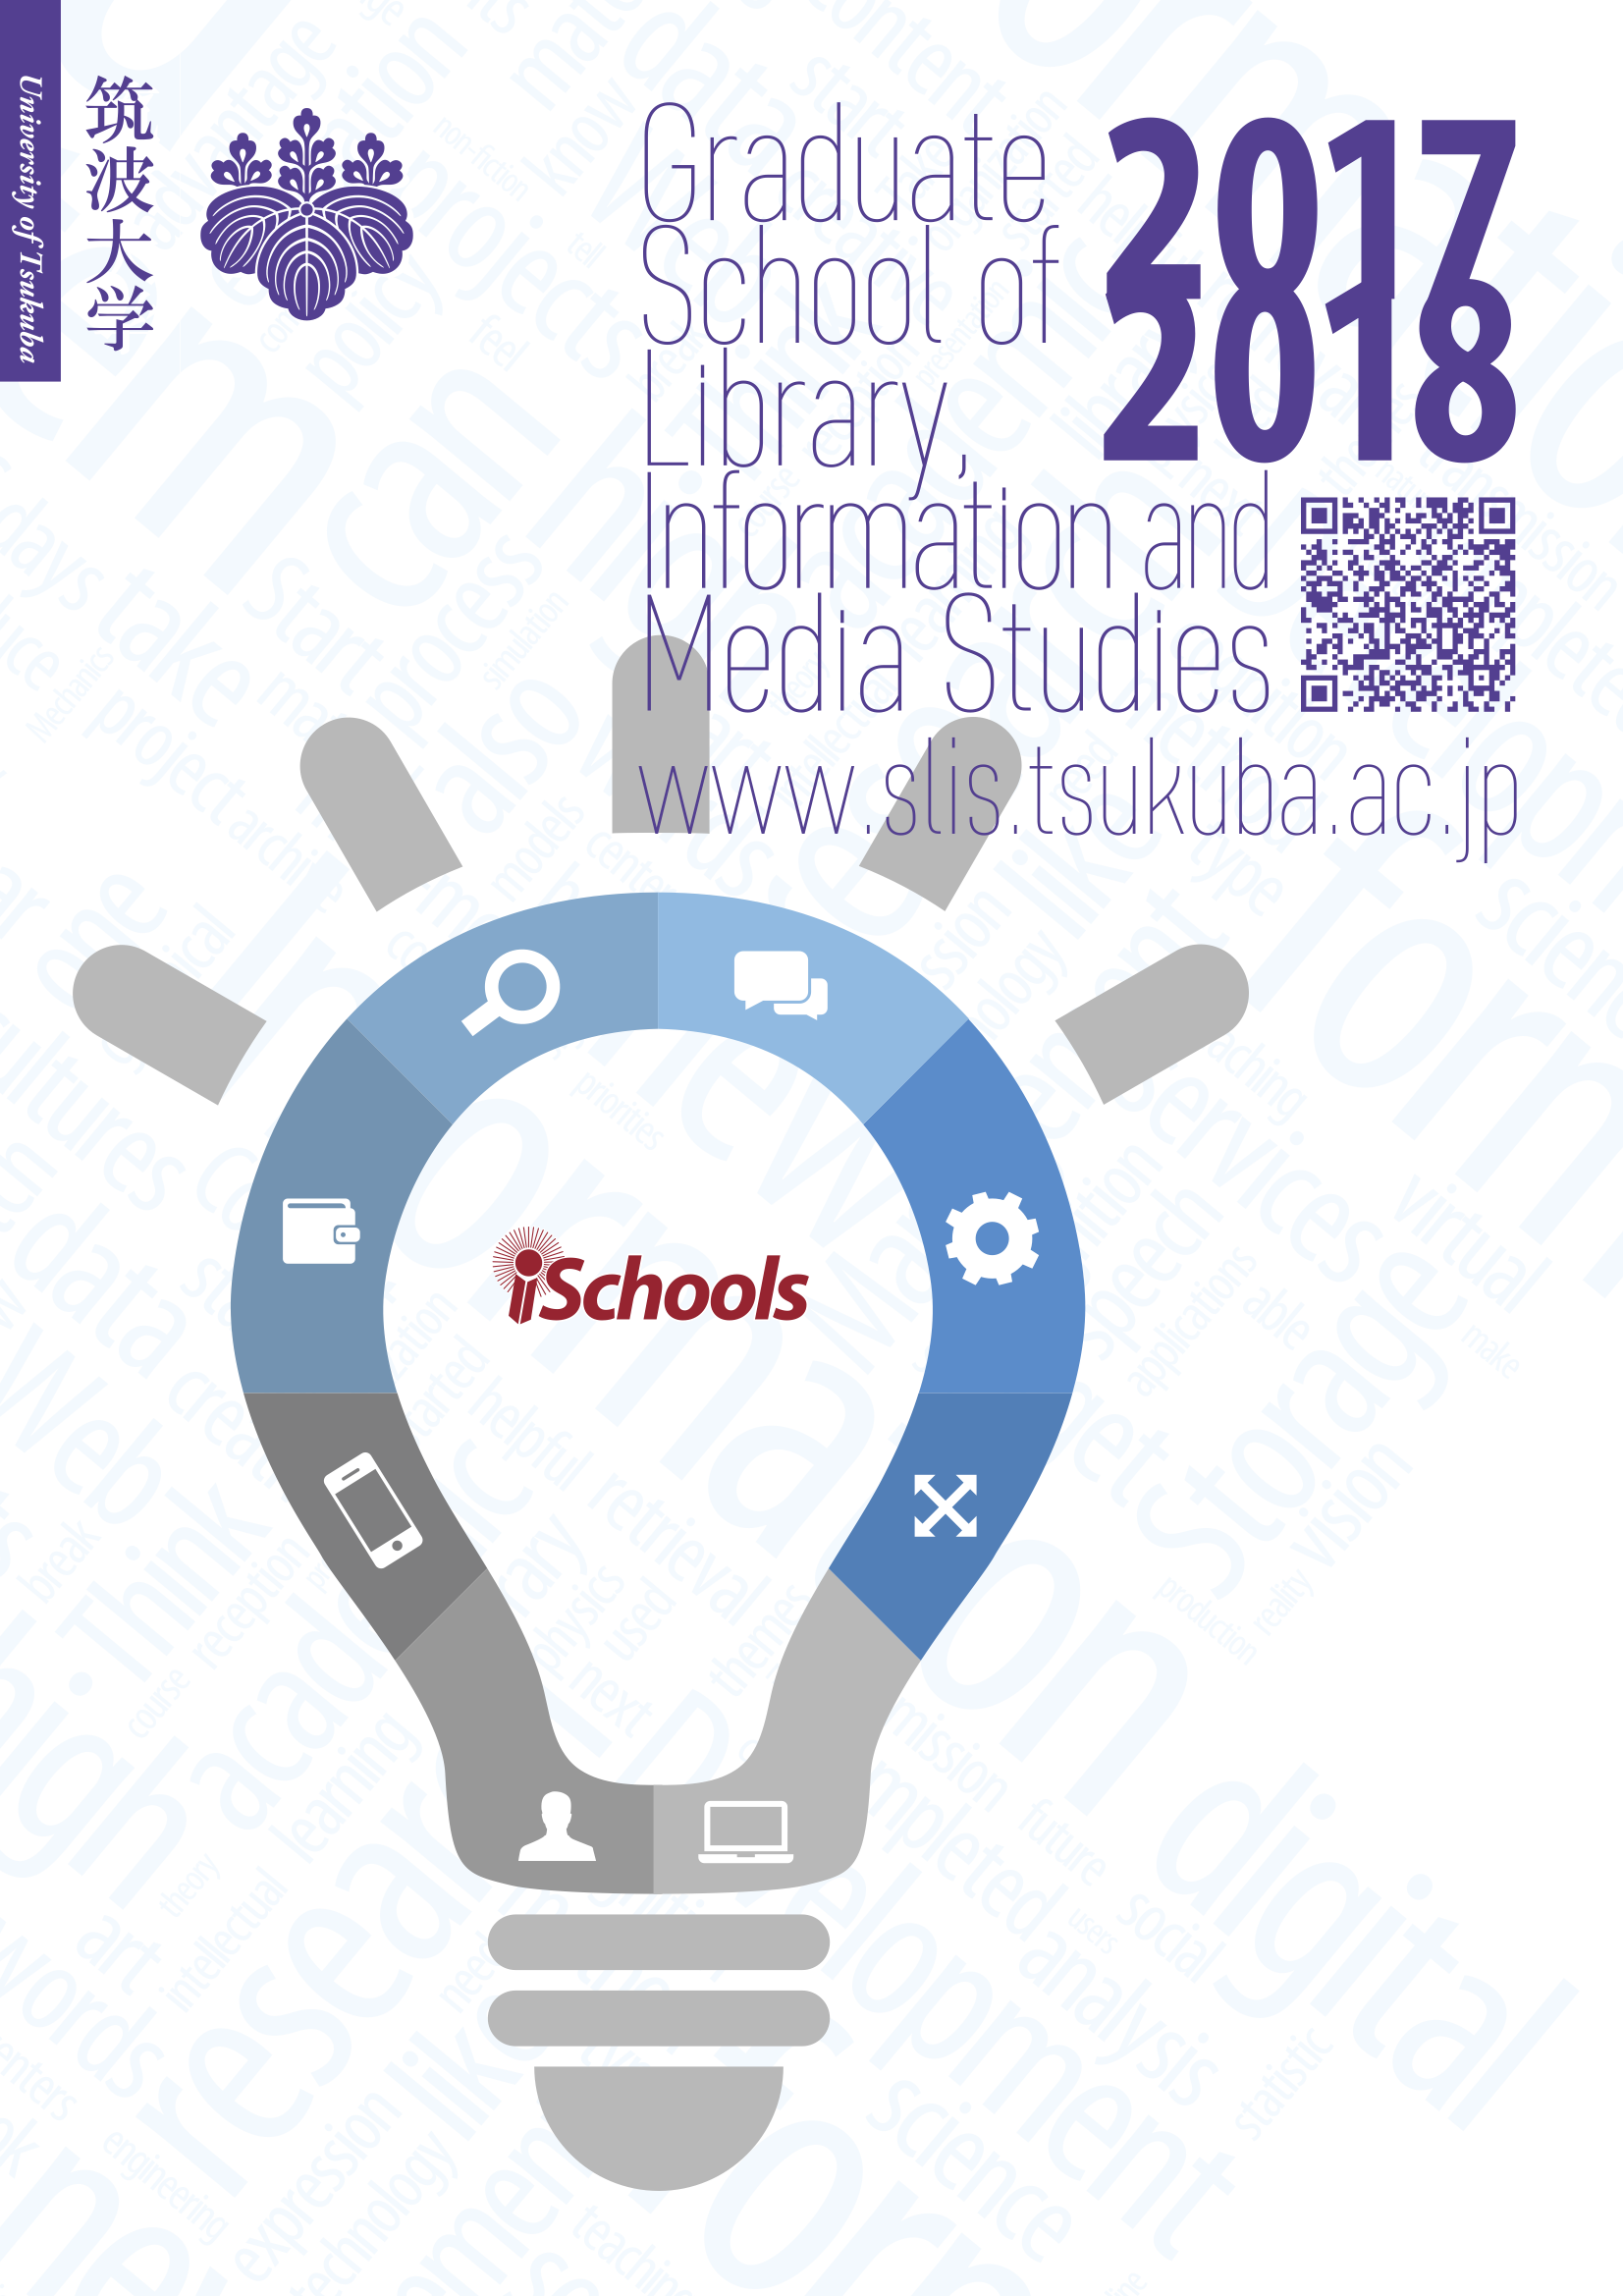 Graduate School of Library, Information and Media Studies Pamphlet (2017-2018)